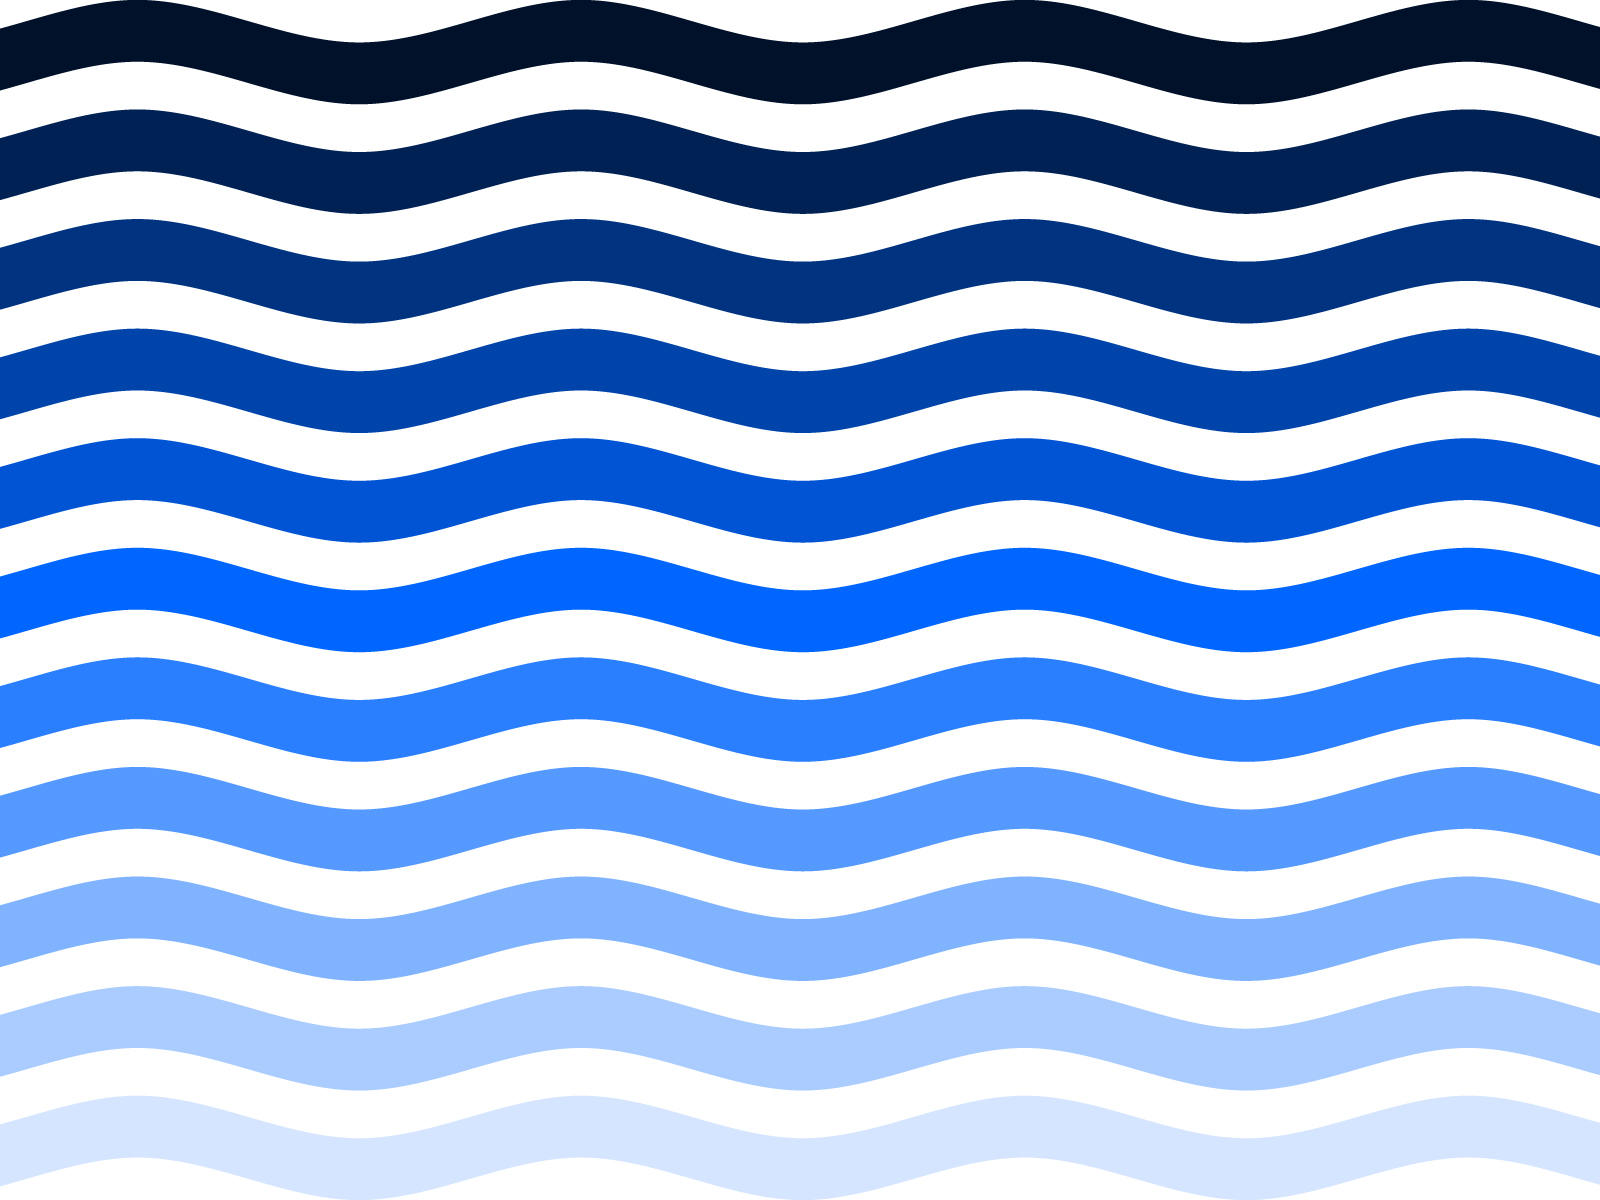 4790 Water Waves Backgrounds on Cause Effect Games